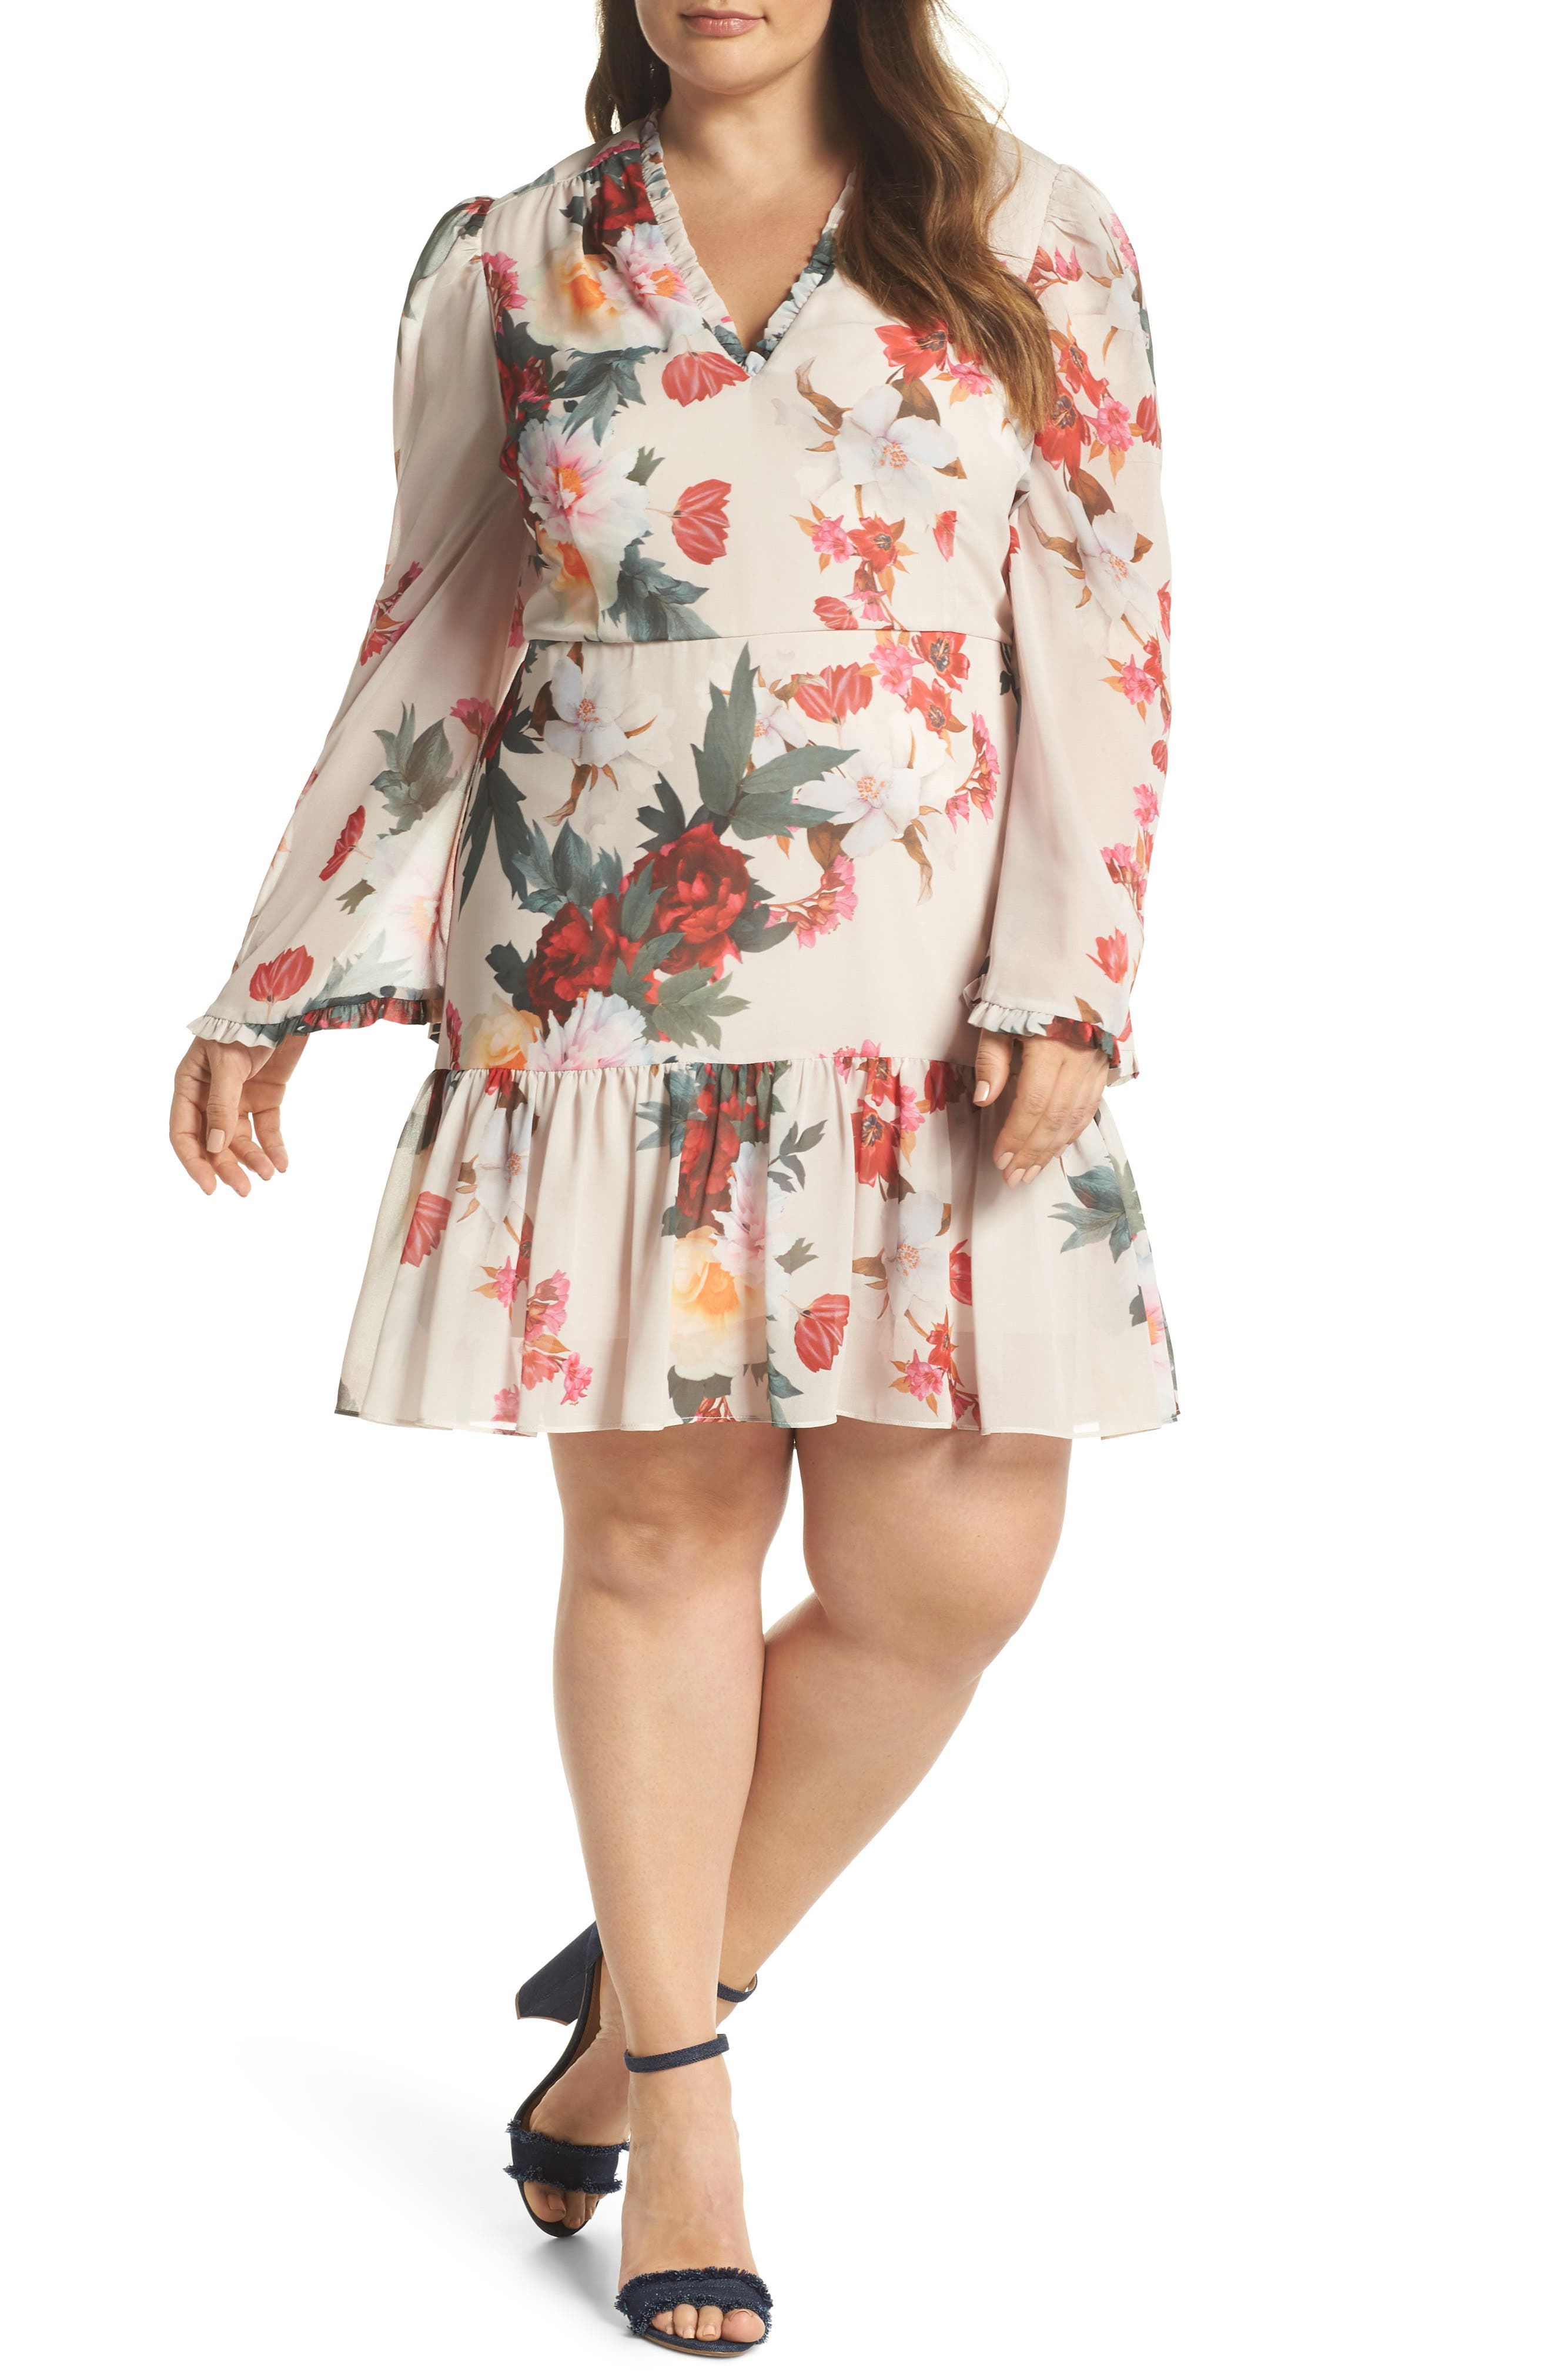 Rosa Floral Chiffon Minidress by Cooper St